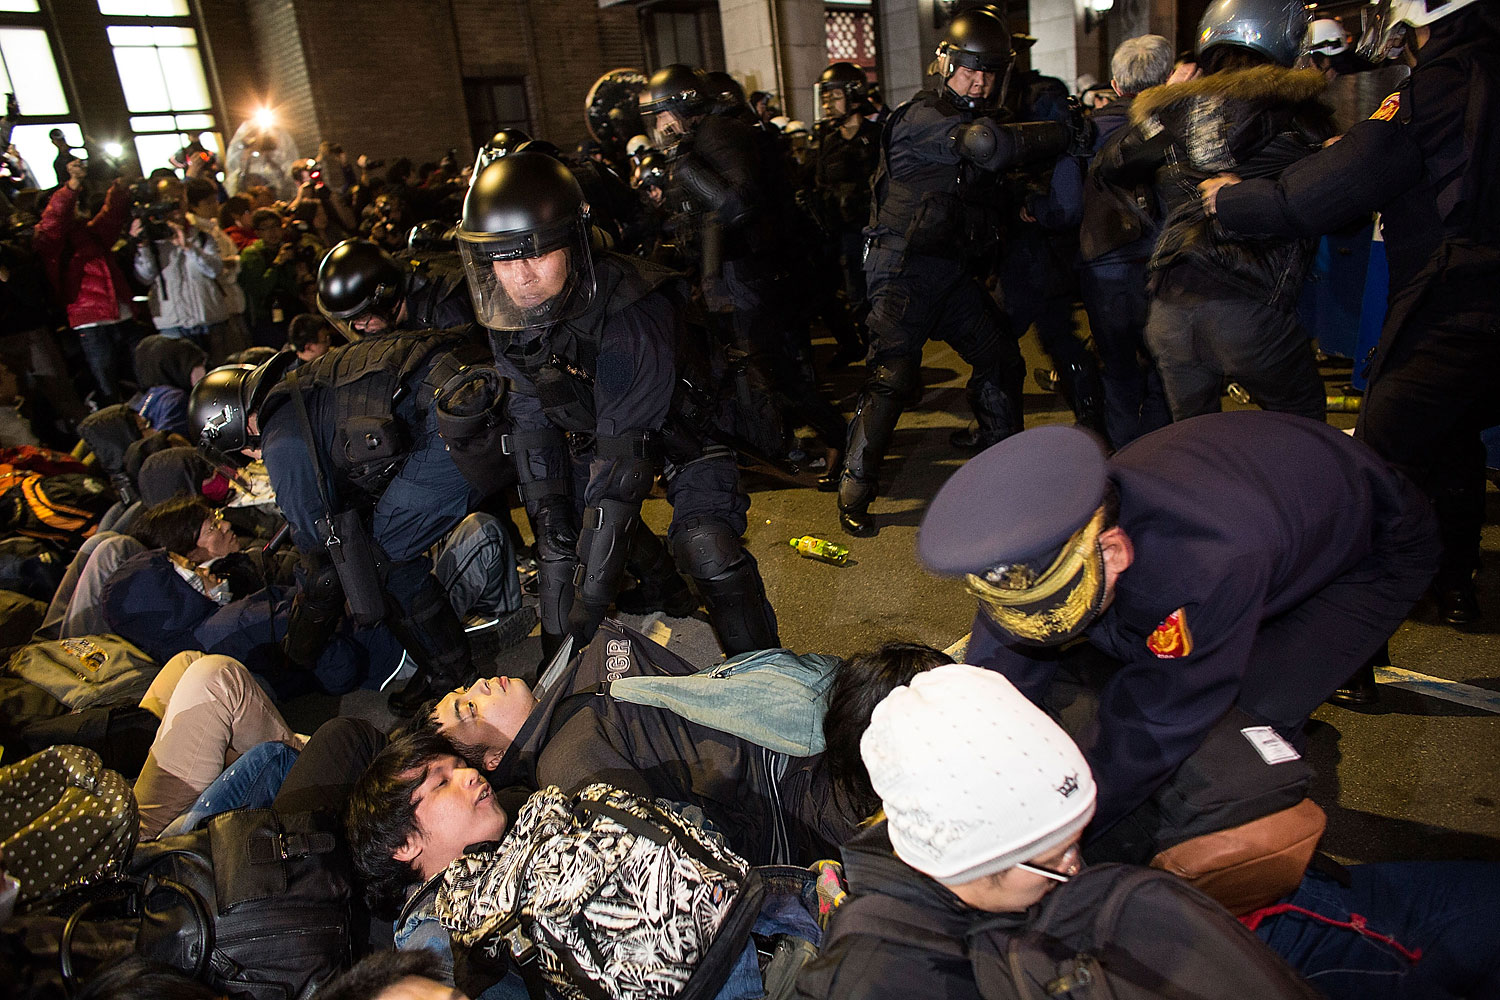 Riot police clash with student protesters outside the Executive Yuan, a branch of government in charge of administrative affairs for all of Taiwan on March 24, 2014 in Taipei, Taiwan.